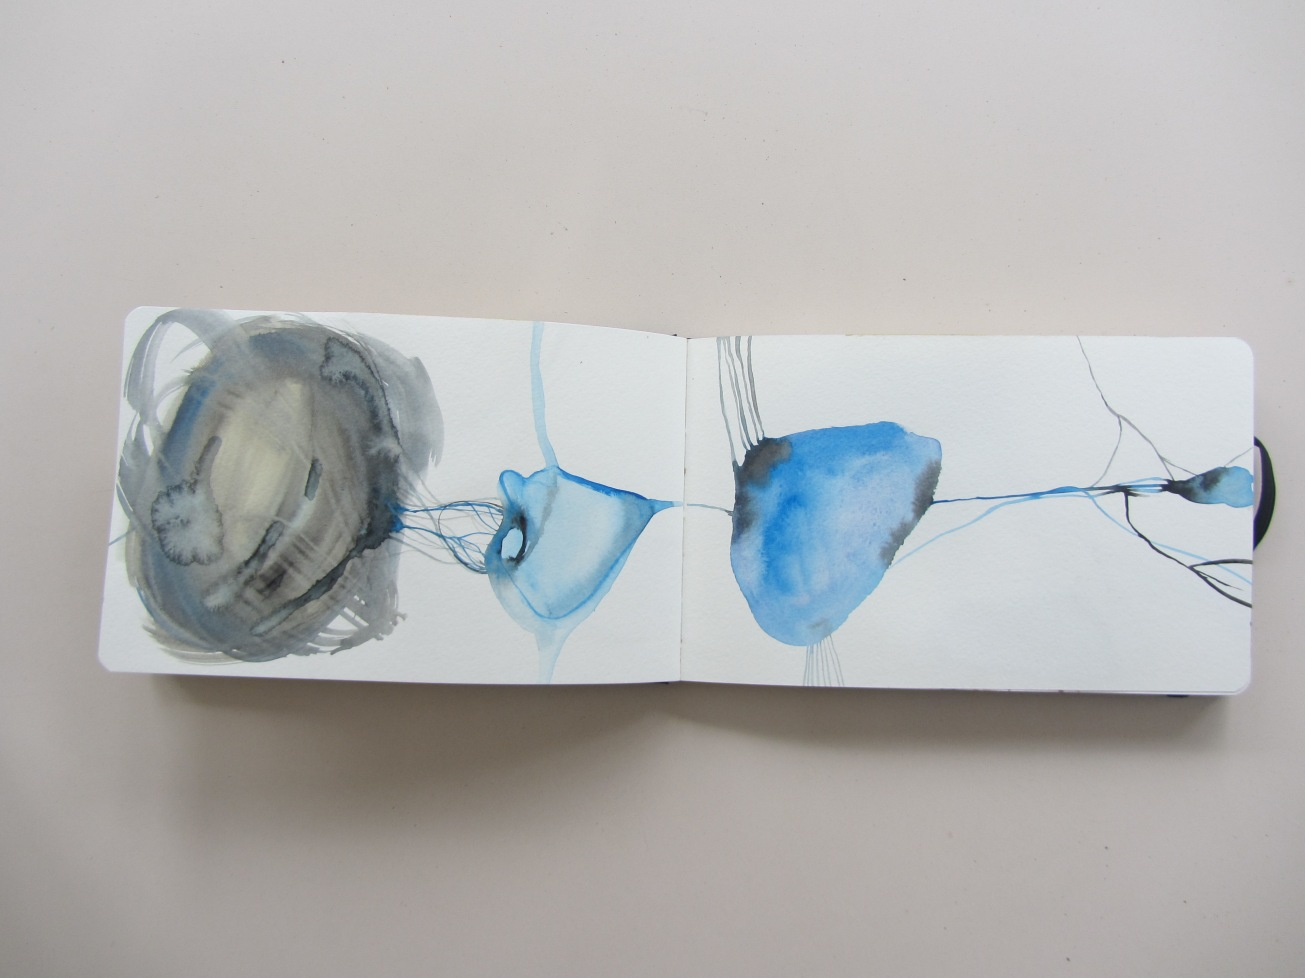 sketchbook (buenos aires), watercolours, laura barbuto, 2012.